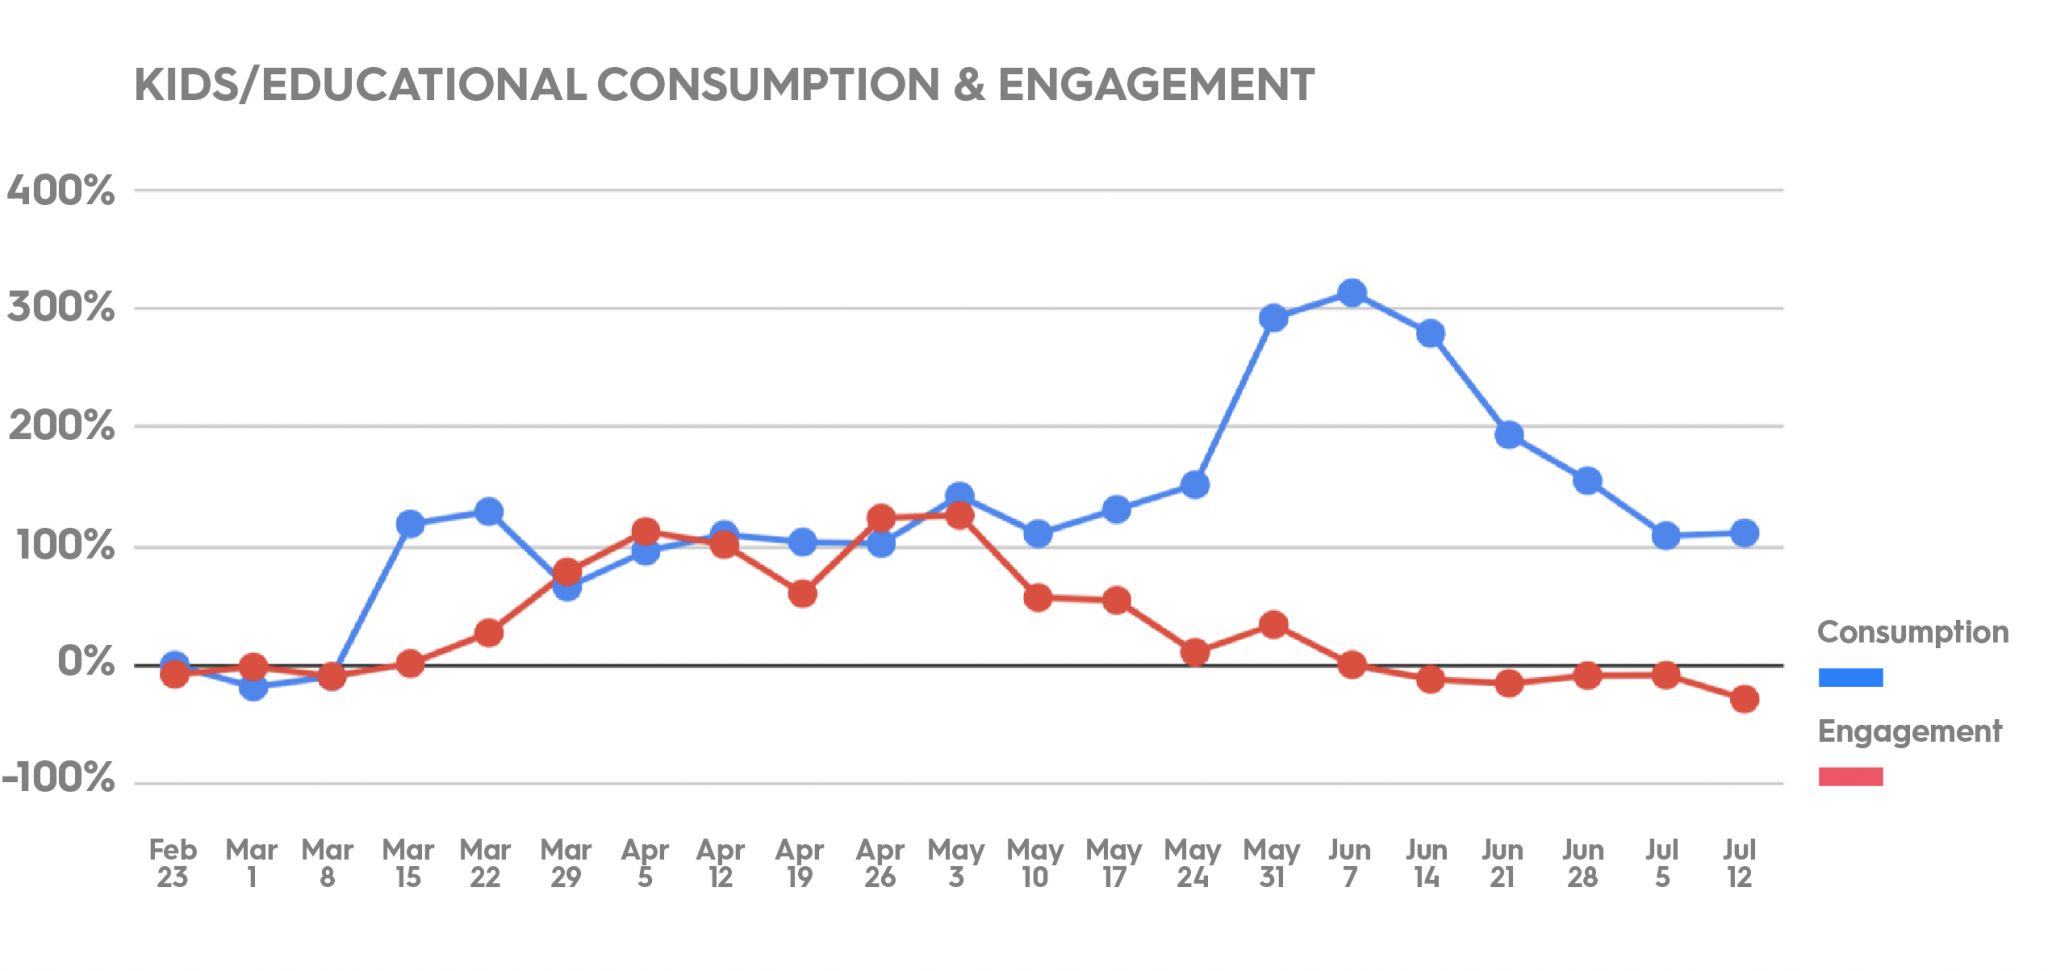 Kids consumption and engagement